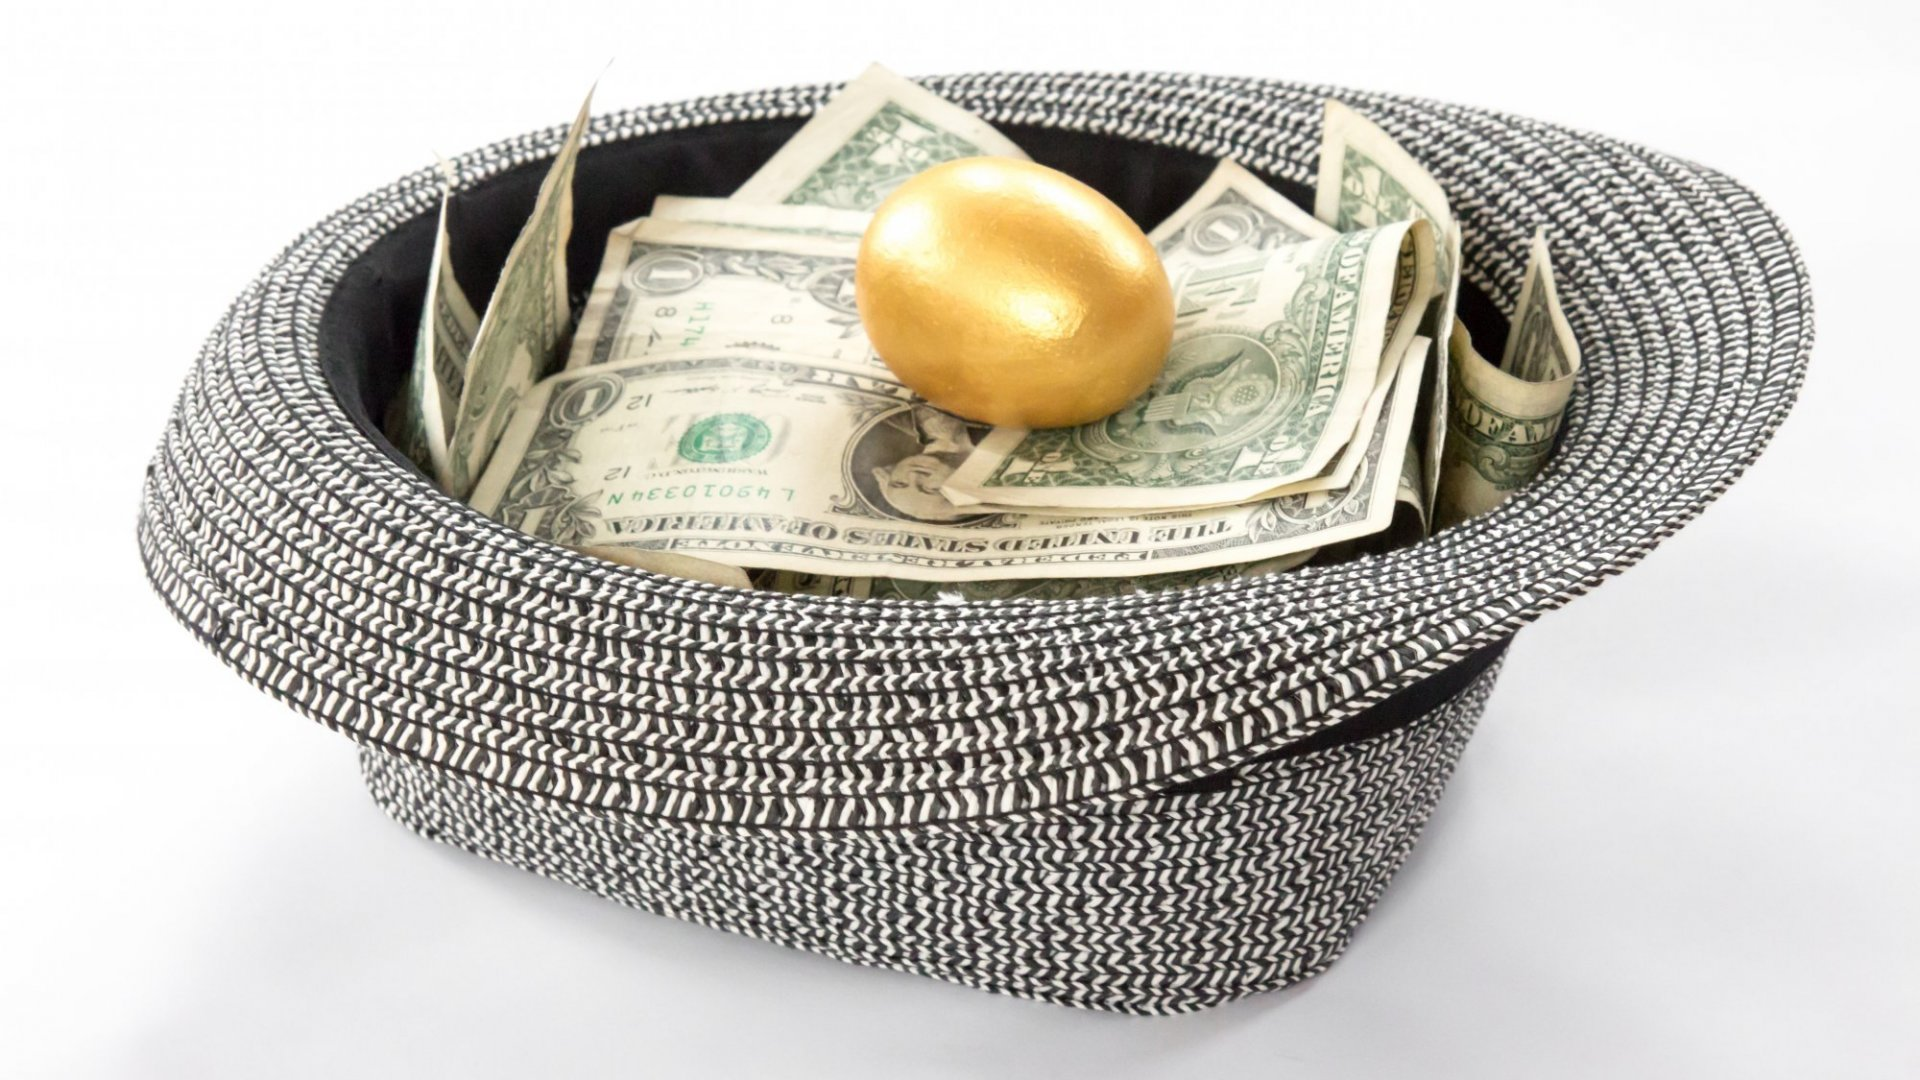 Understand your best options when raising capital through crowdfunding for your golden idea.